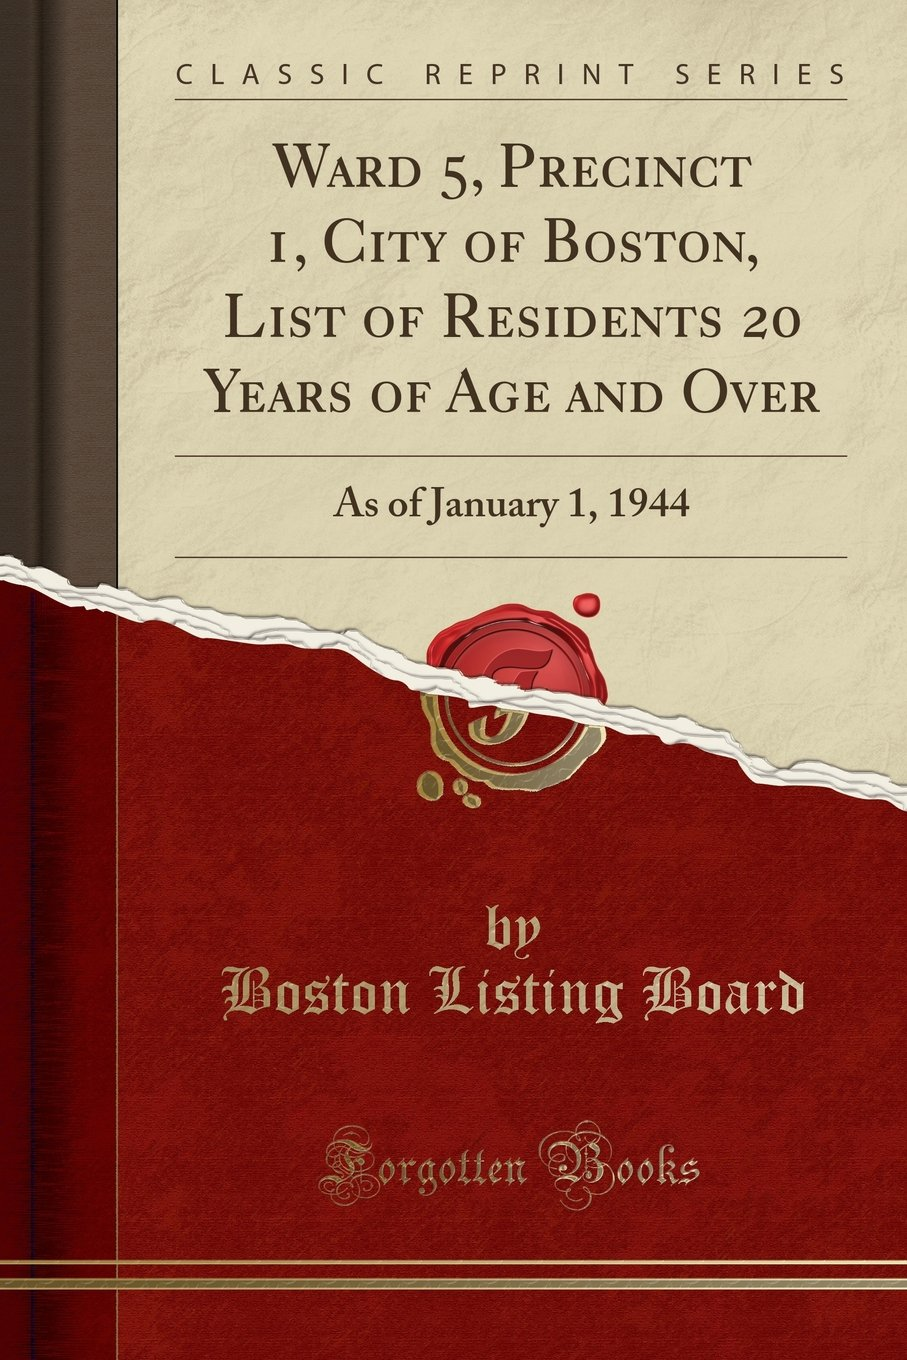 Download Ward 5, Precinct 1, City of Boston, List of Residents 20 Years of Age and Over: As of January 1, 1944 (Classic Reprint) pdf